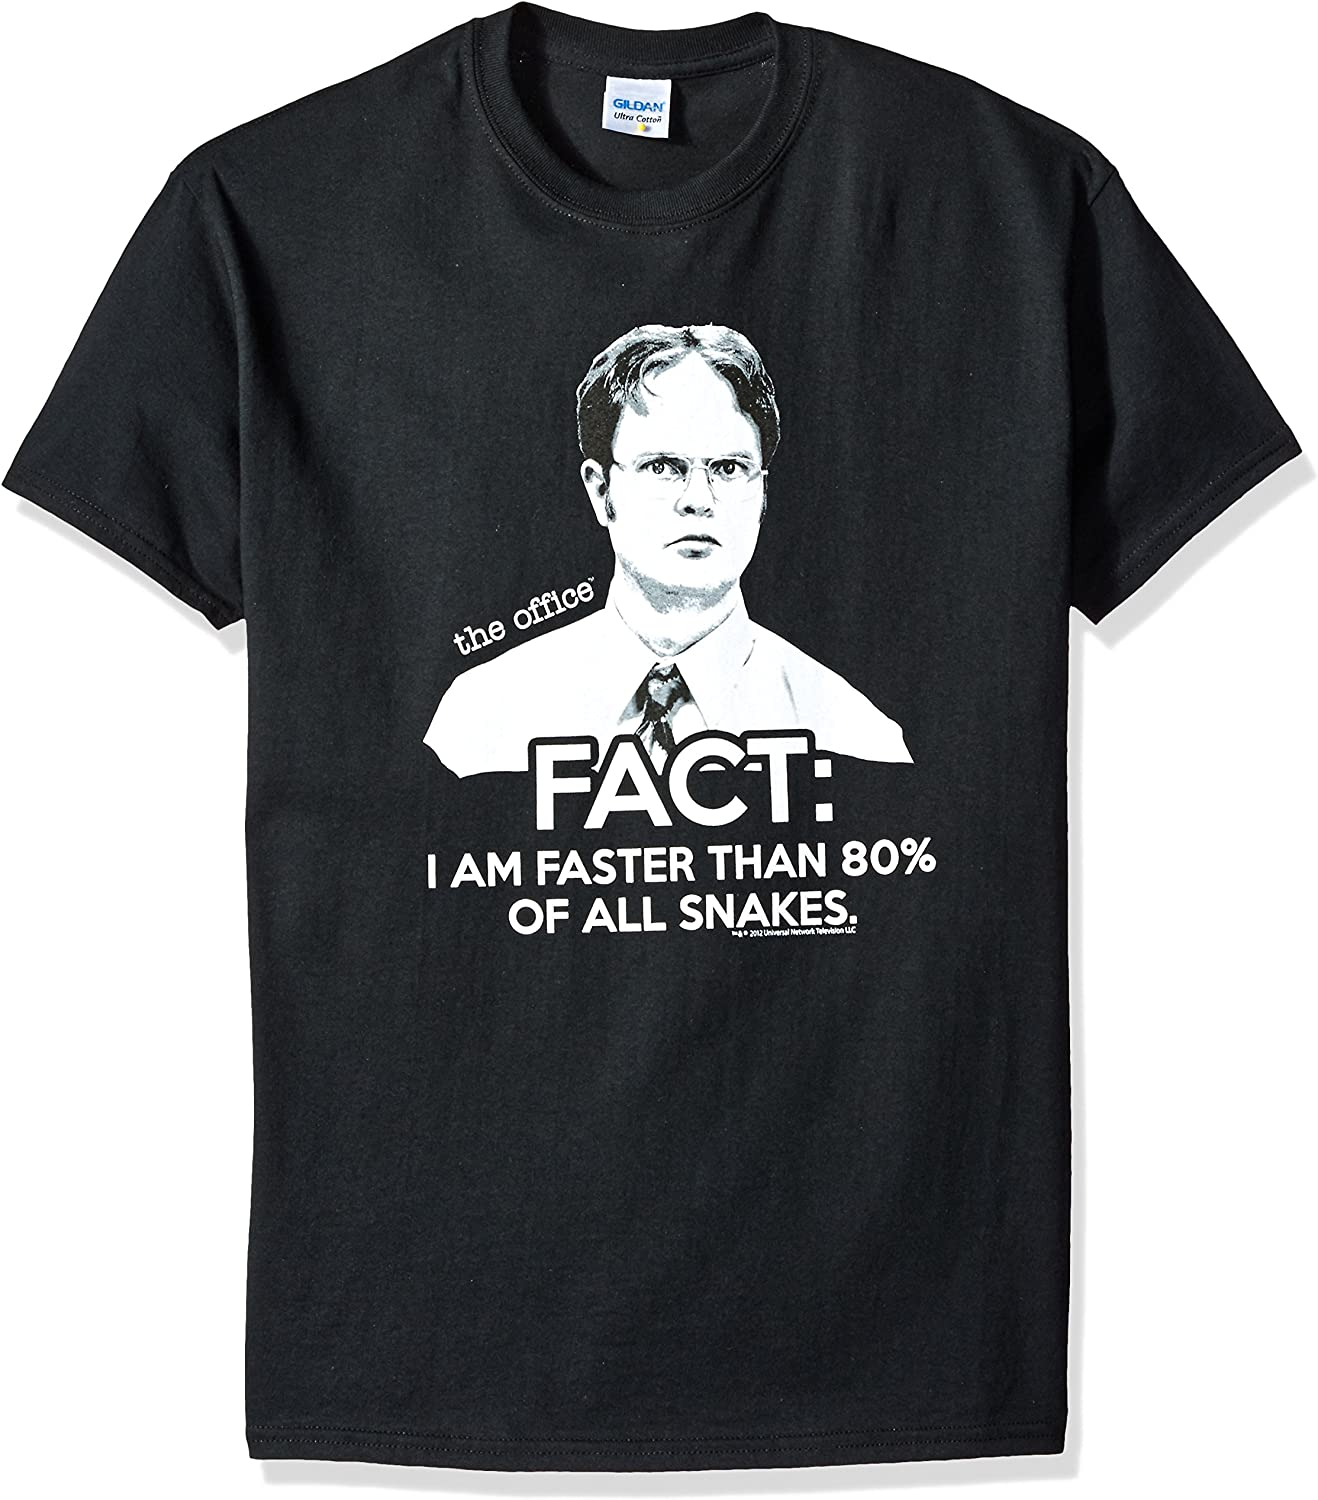 The Office Dwight Fact Faster Than Snakes T-Shirt